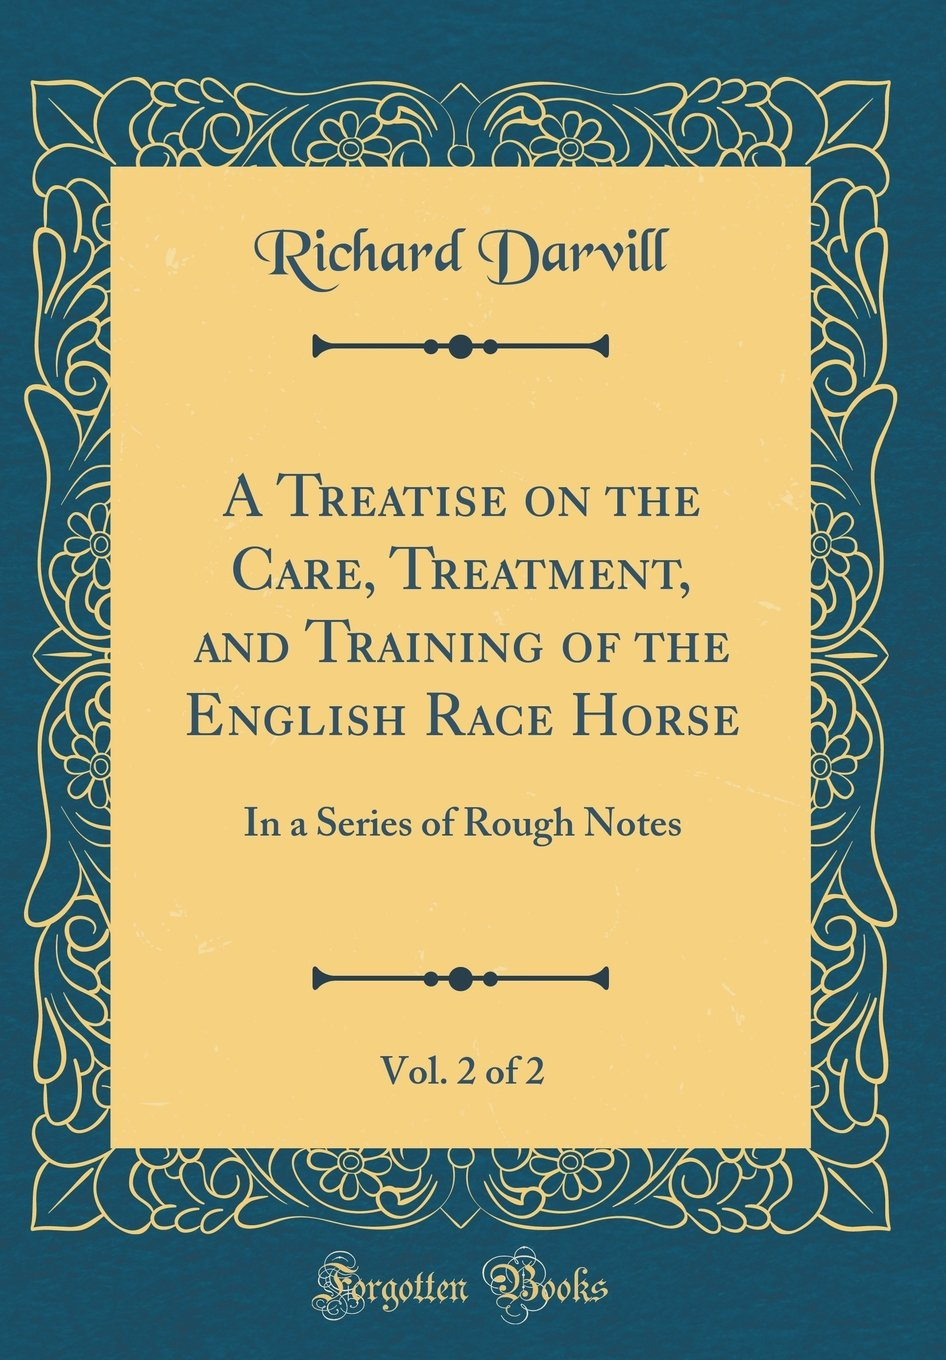 A Treatise on the Care, Treatment, and Training of the English Race Horse, Vol. 2 of 2: In a Series of Rough Notes (Classic Reprint) pdf epub